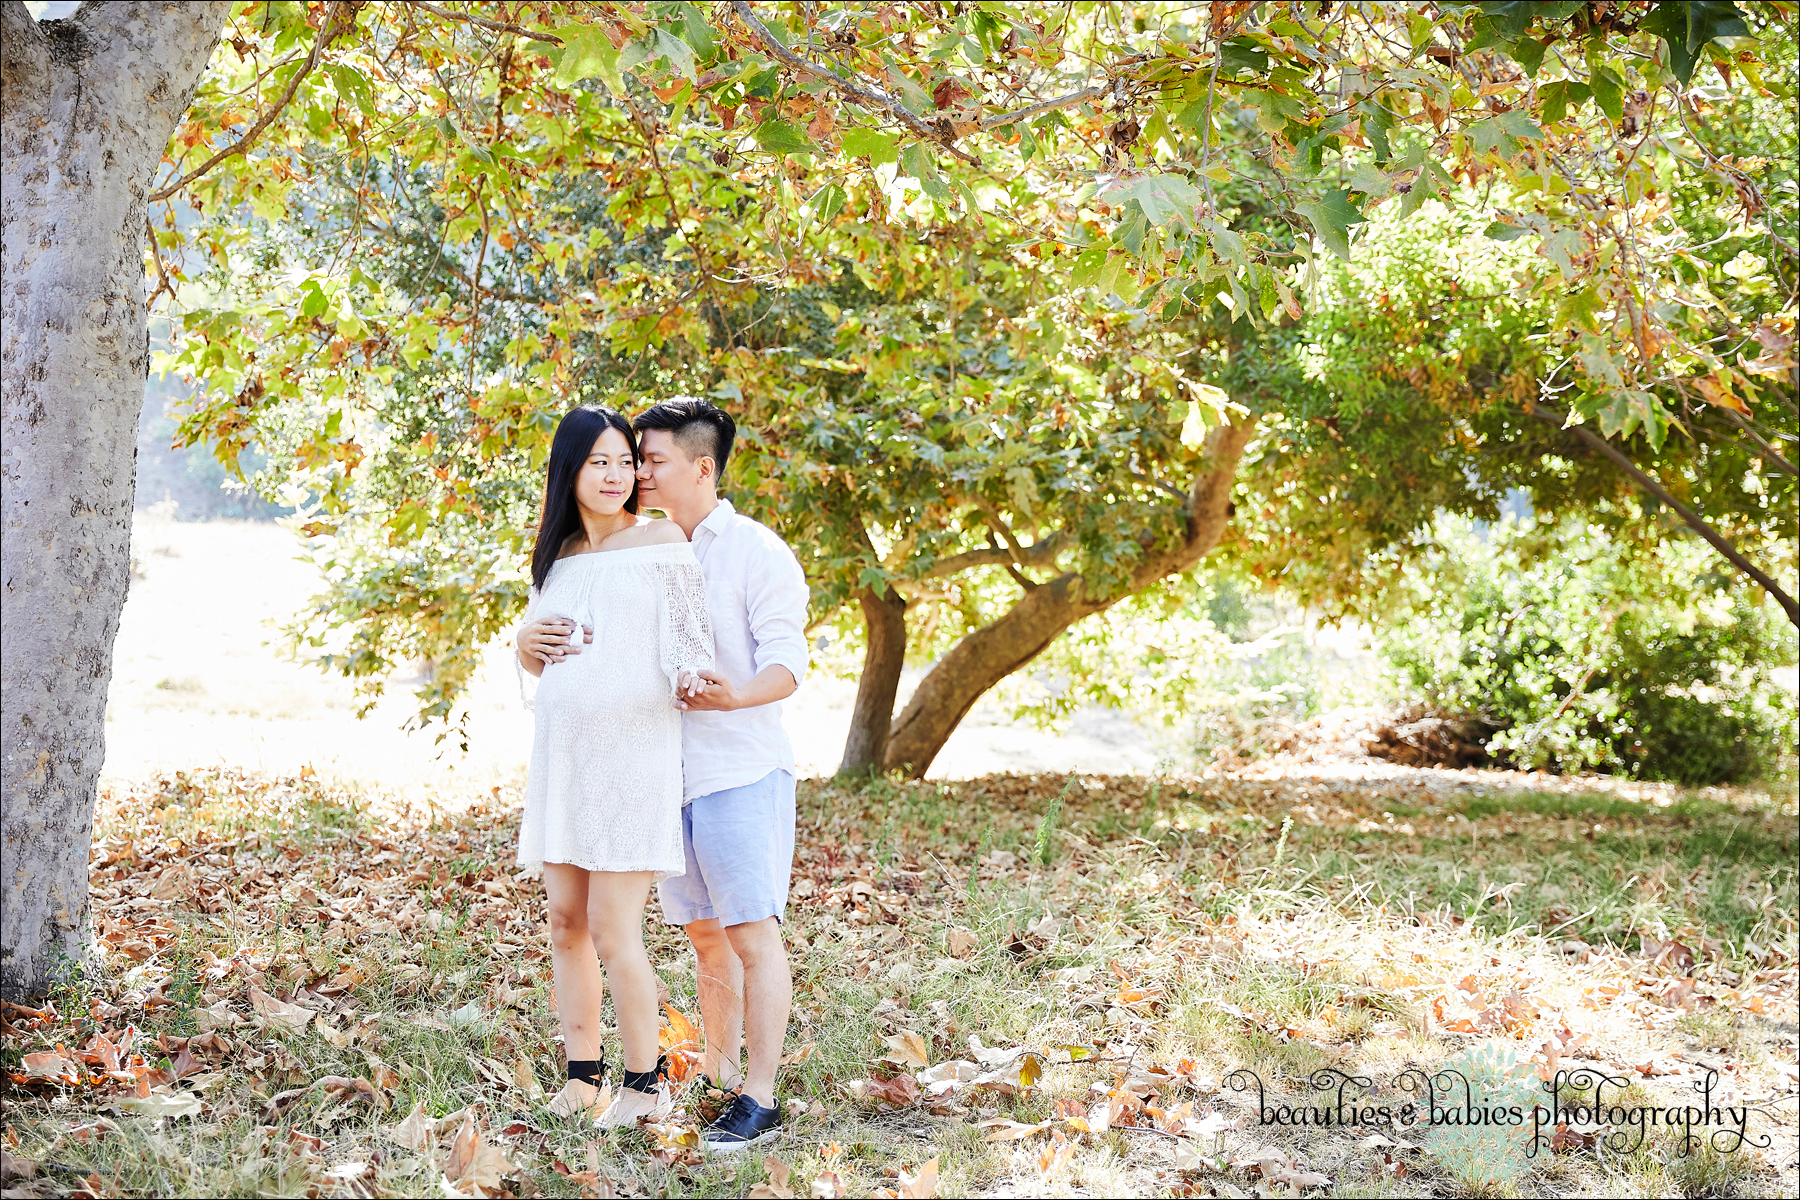 Los Angeles pregnancy photography professional maternity photographer